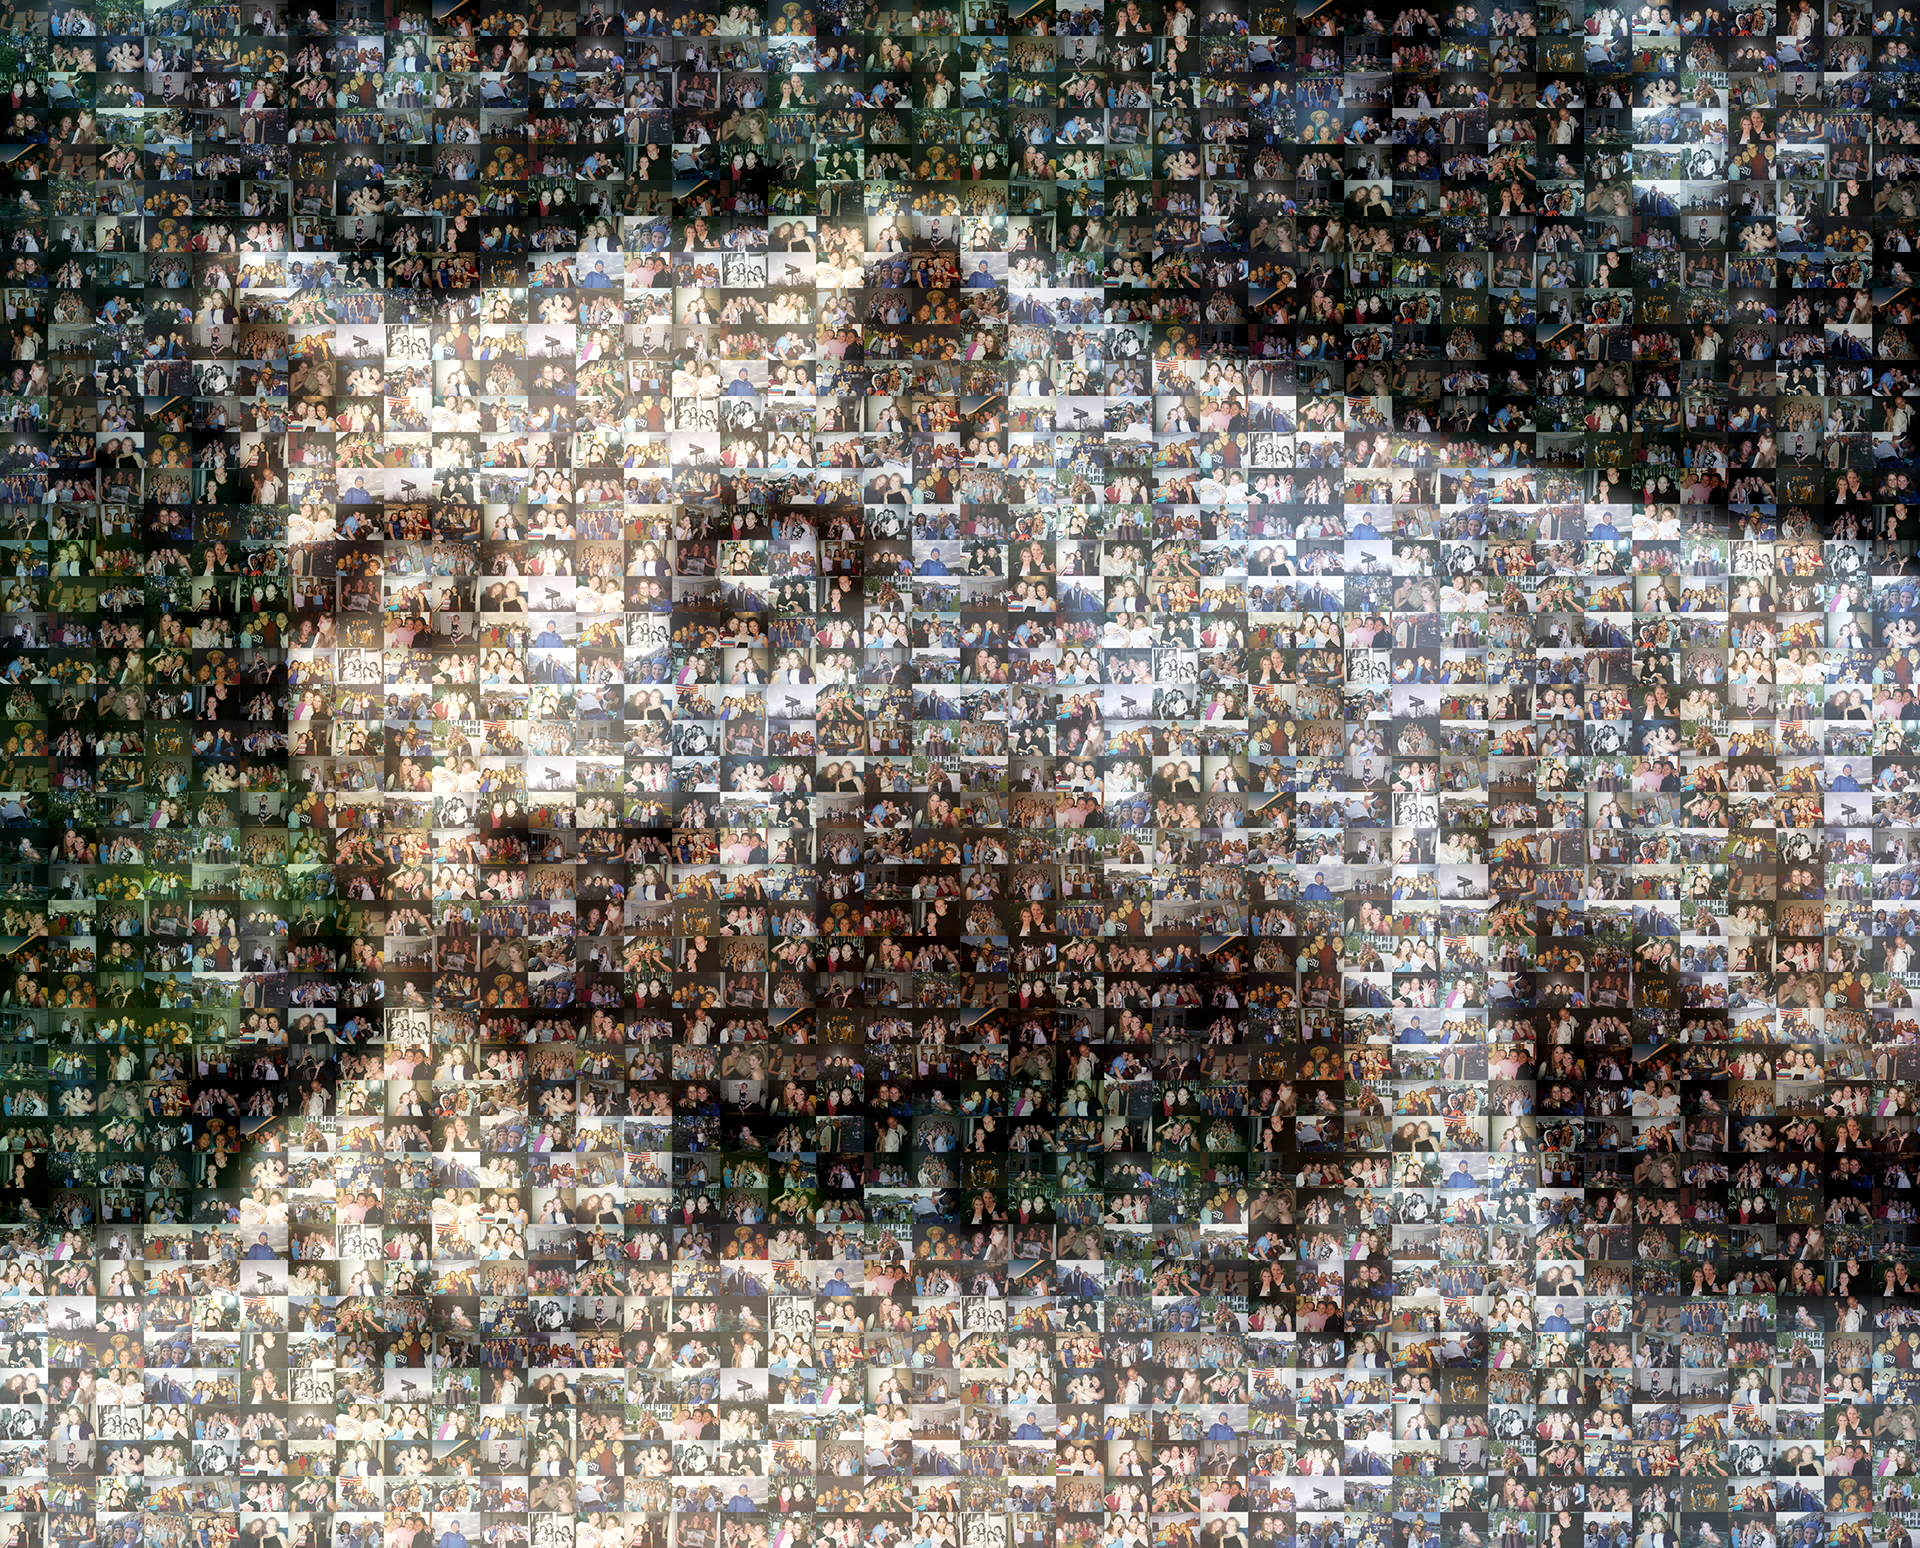 photo mosaic created using 92 college life photos